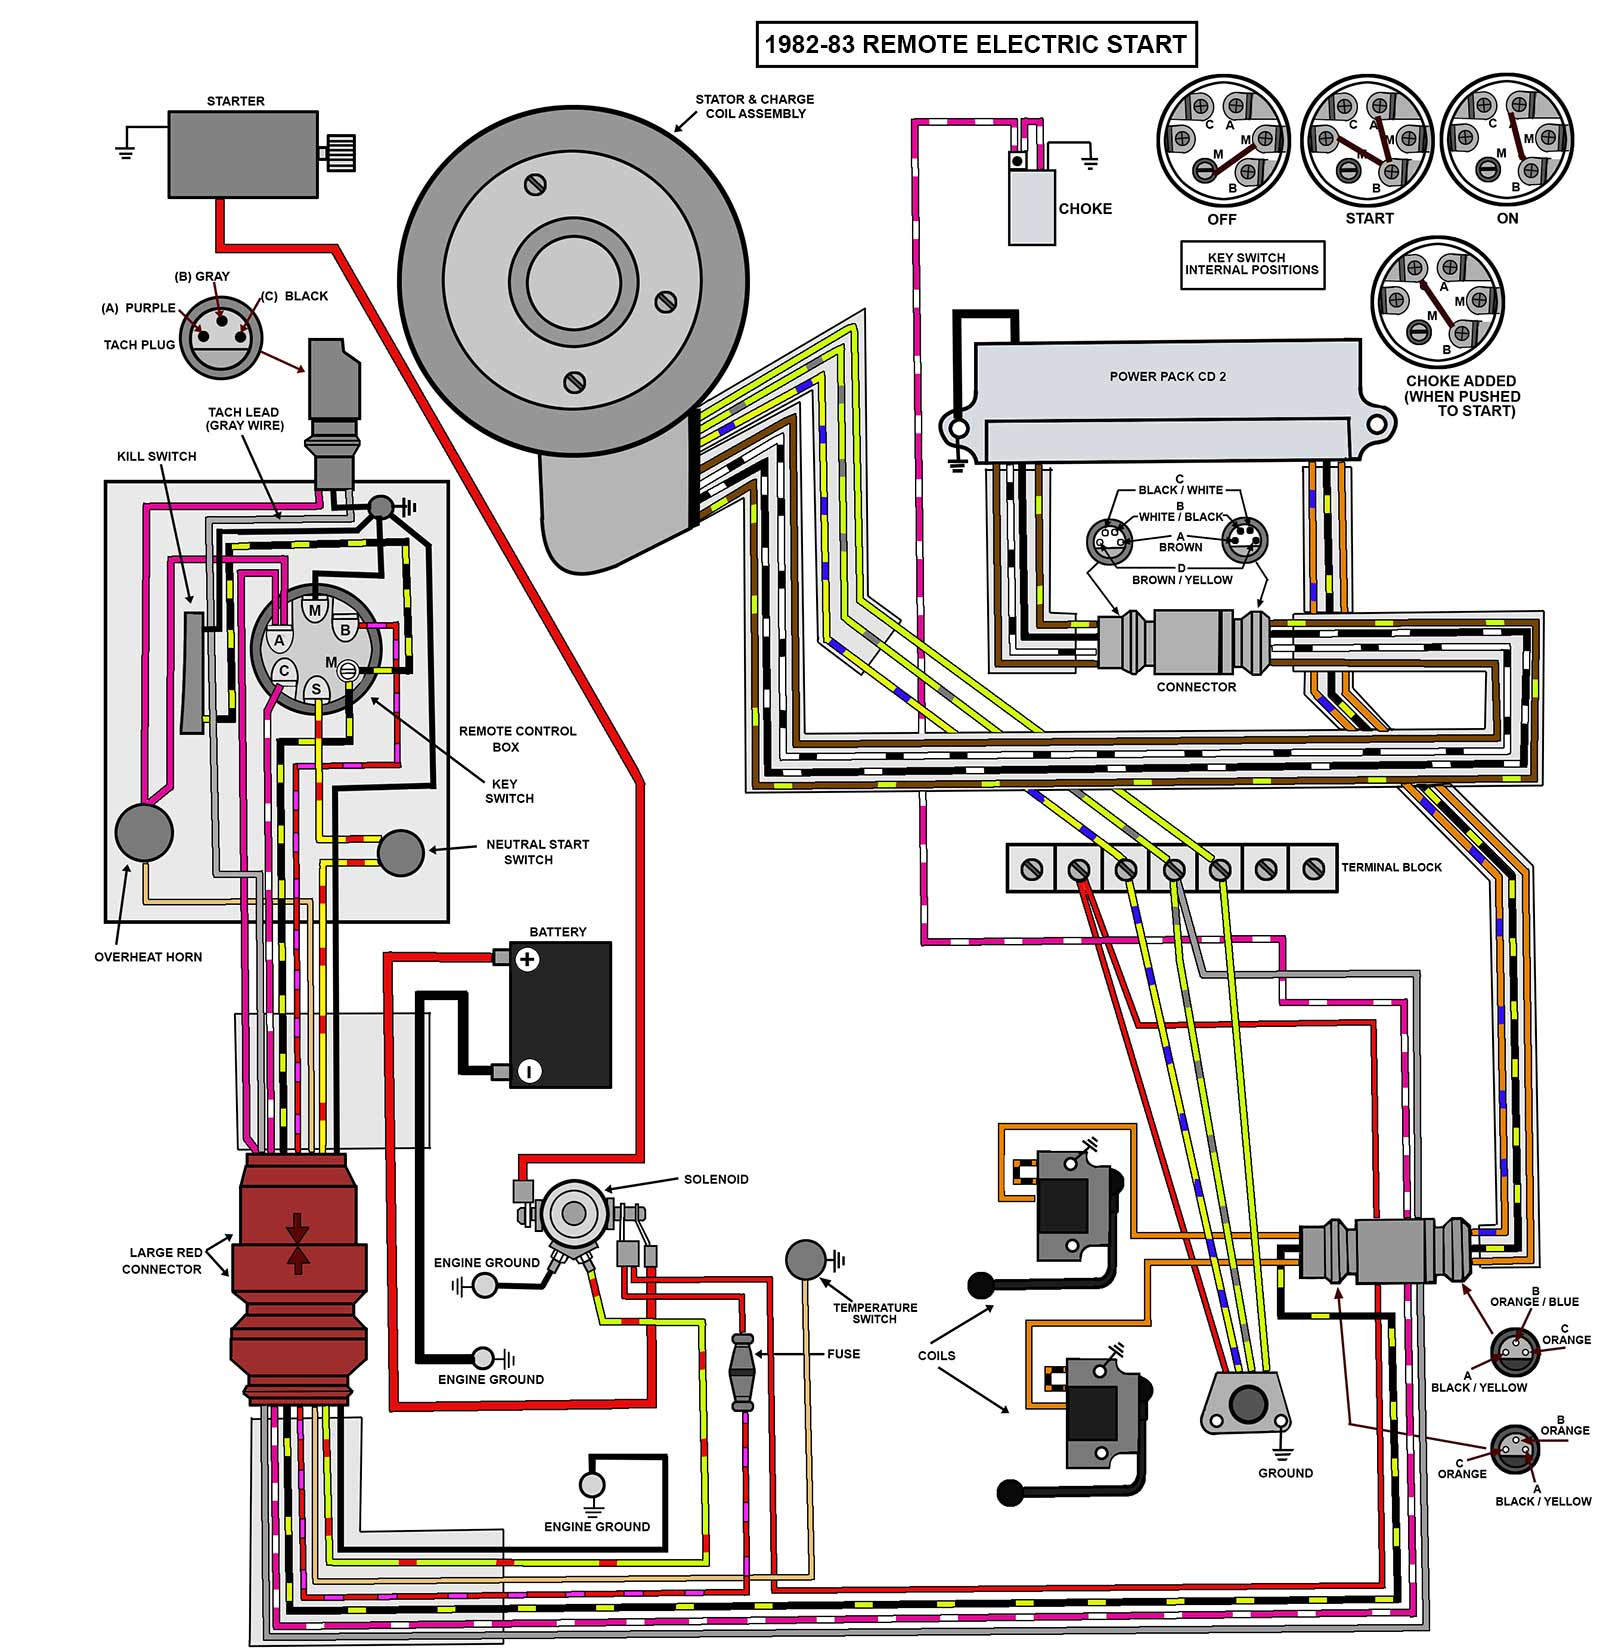 25_35_82 83_elec remote hp wiring diagram wiring harness diagram \u2022 wiring diagrams j 40 hp mercury wiring harness schematic at nearapp.co